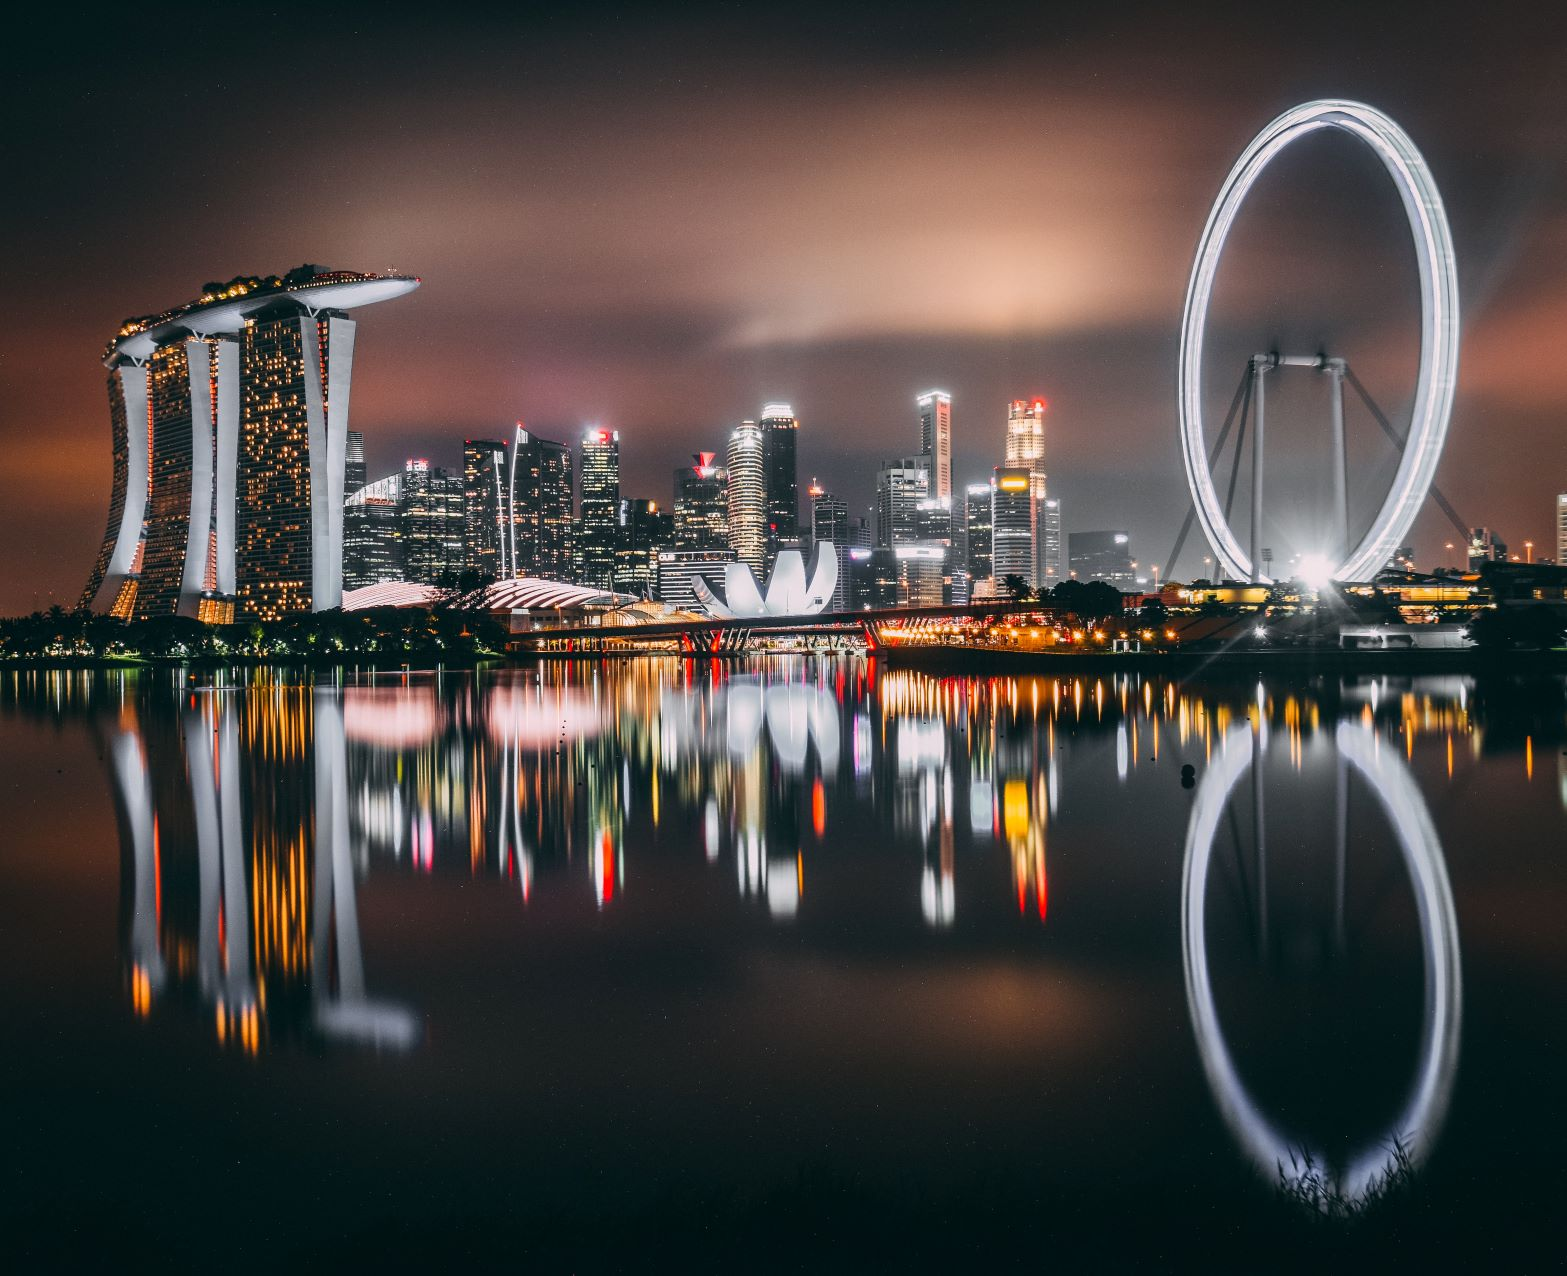 6 Reasons To Build Your Business In Singapore